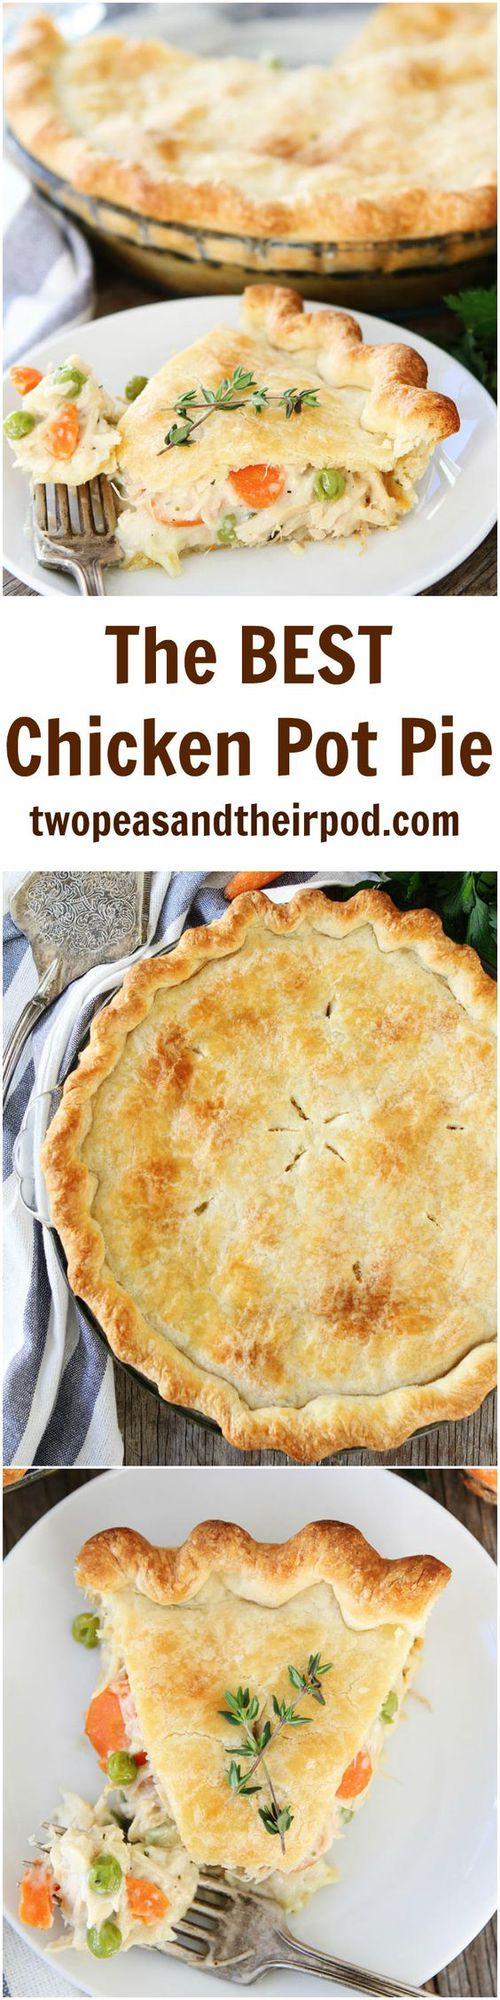 Chicken Pot Pie -this classic homemade chicken pot pie is the ultimate comfort food! Learn how to make this easy chicken pot pie recipe and you'll never buy a chicken pot pie again! #chicken #potpie #dinner #chickenrecipe Visit twopeasandtheirpod.com for more simple, fresh, and family friendly meals.